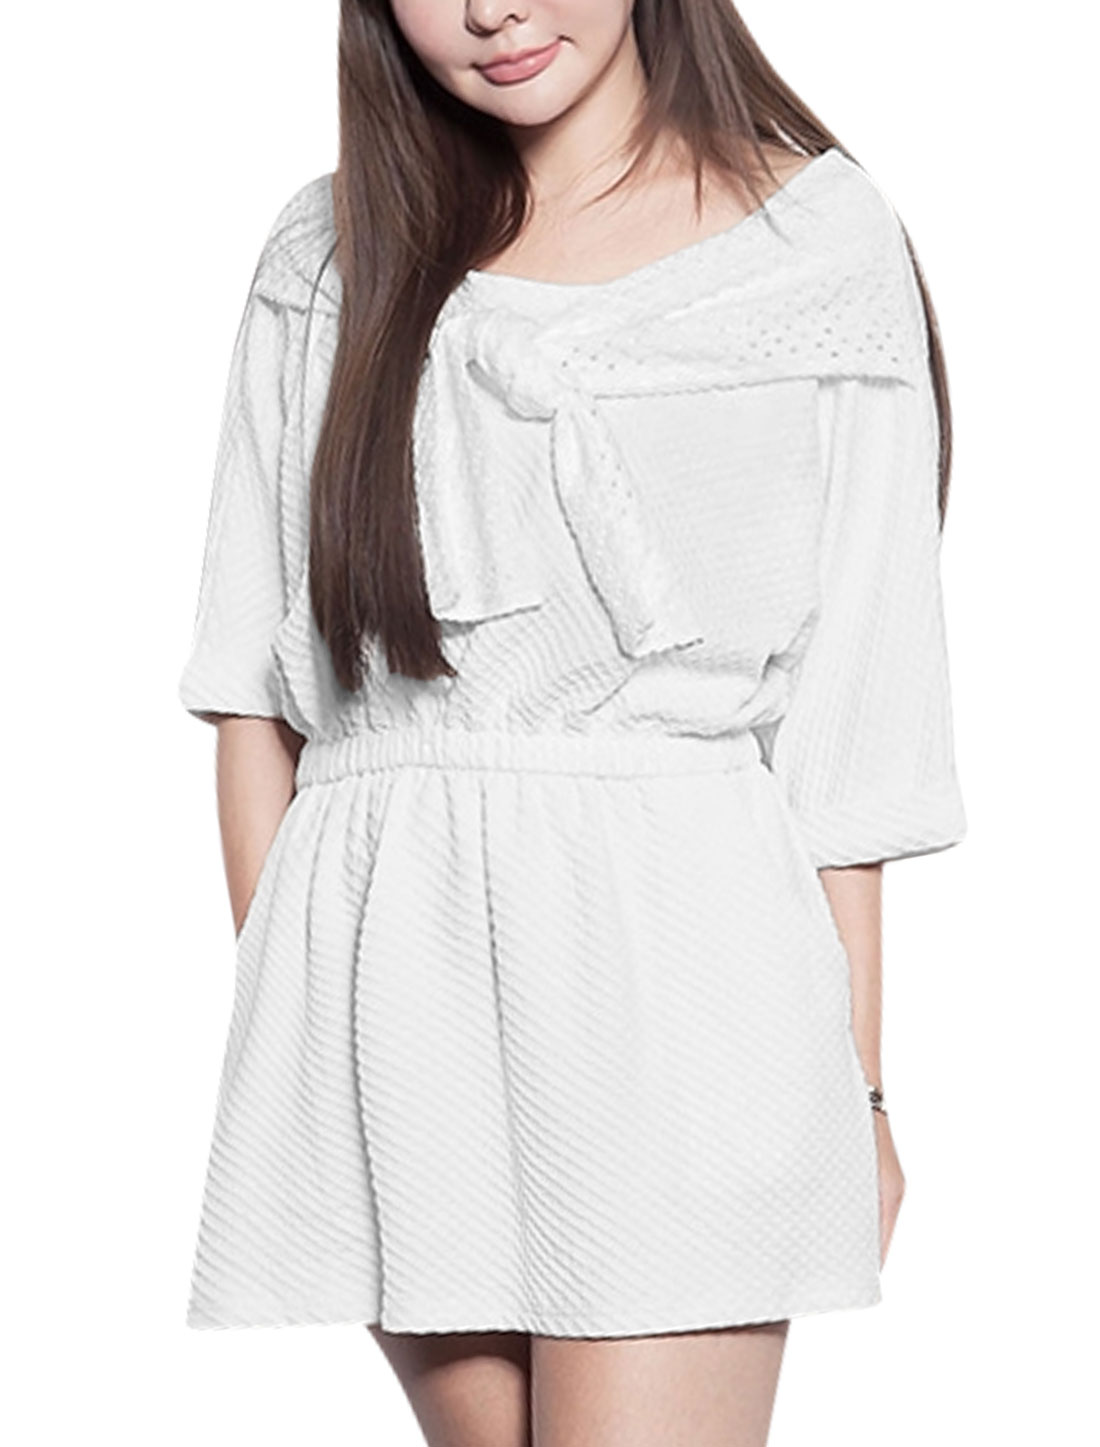 Women Round Neck Elbow Sleeves Elastic Waist Texture Design Tunic Dress White S